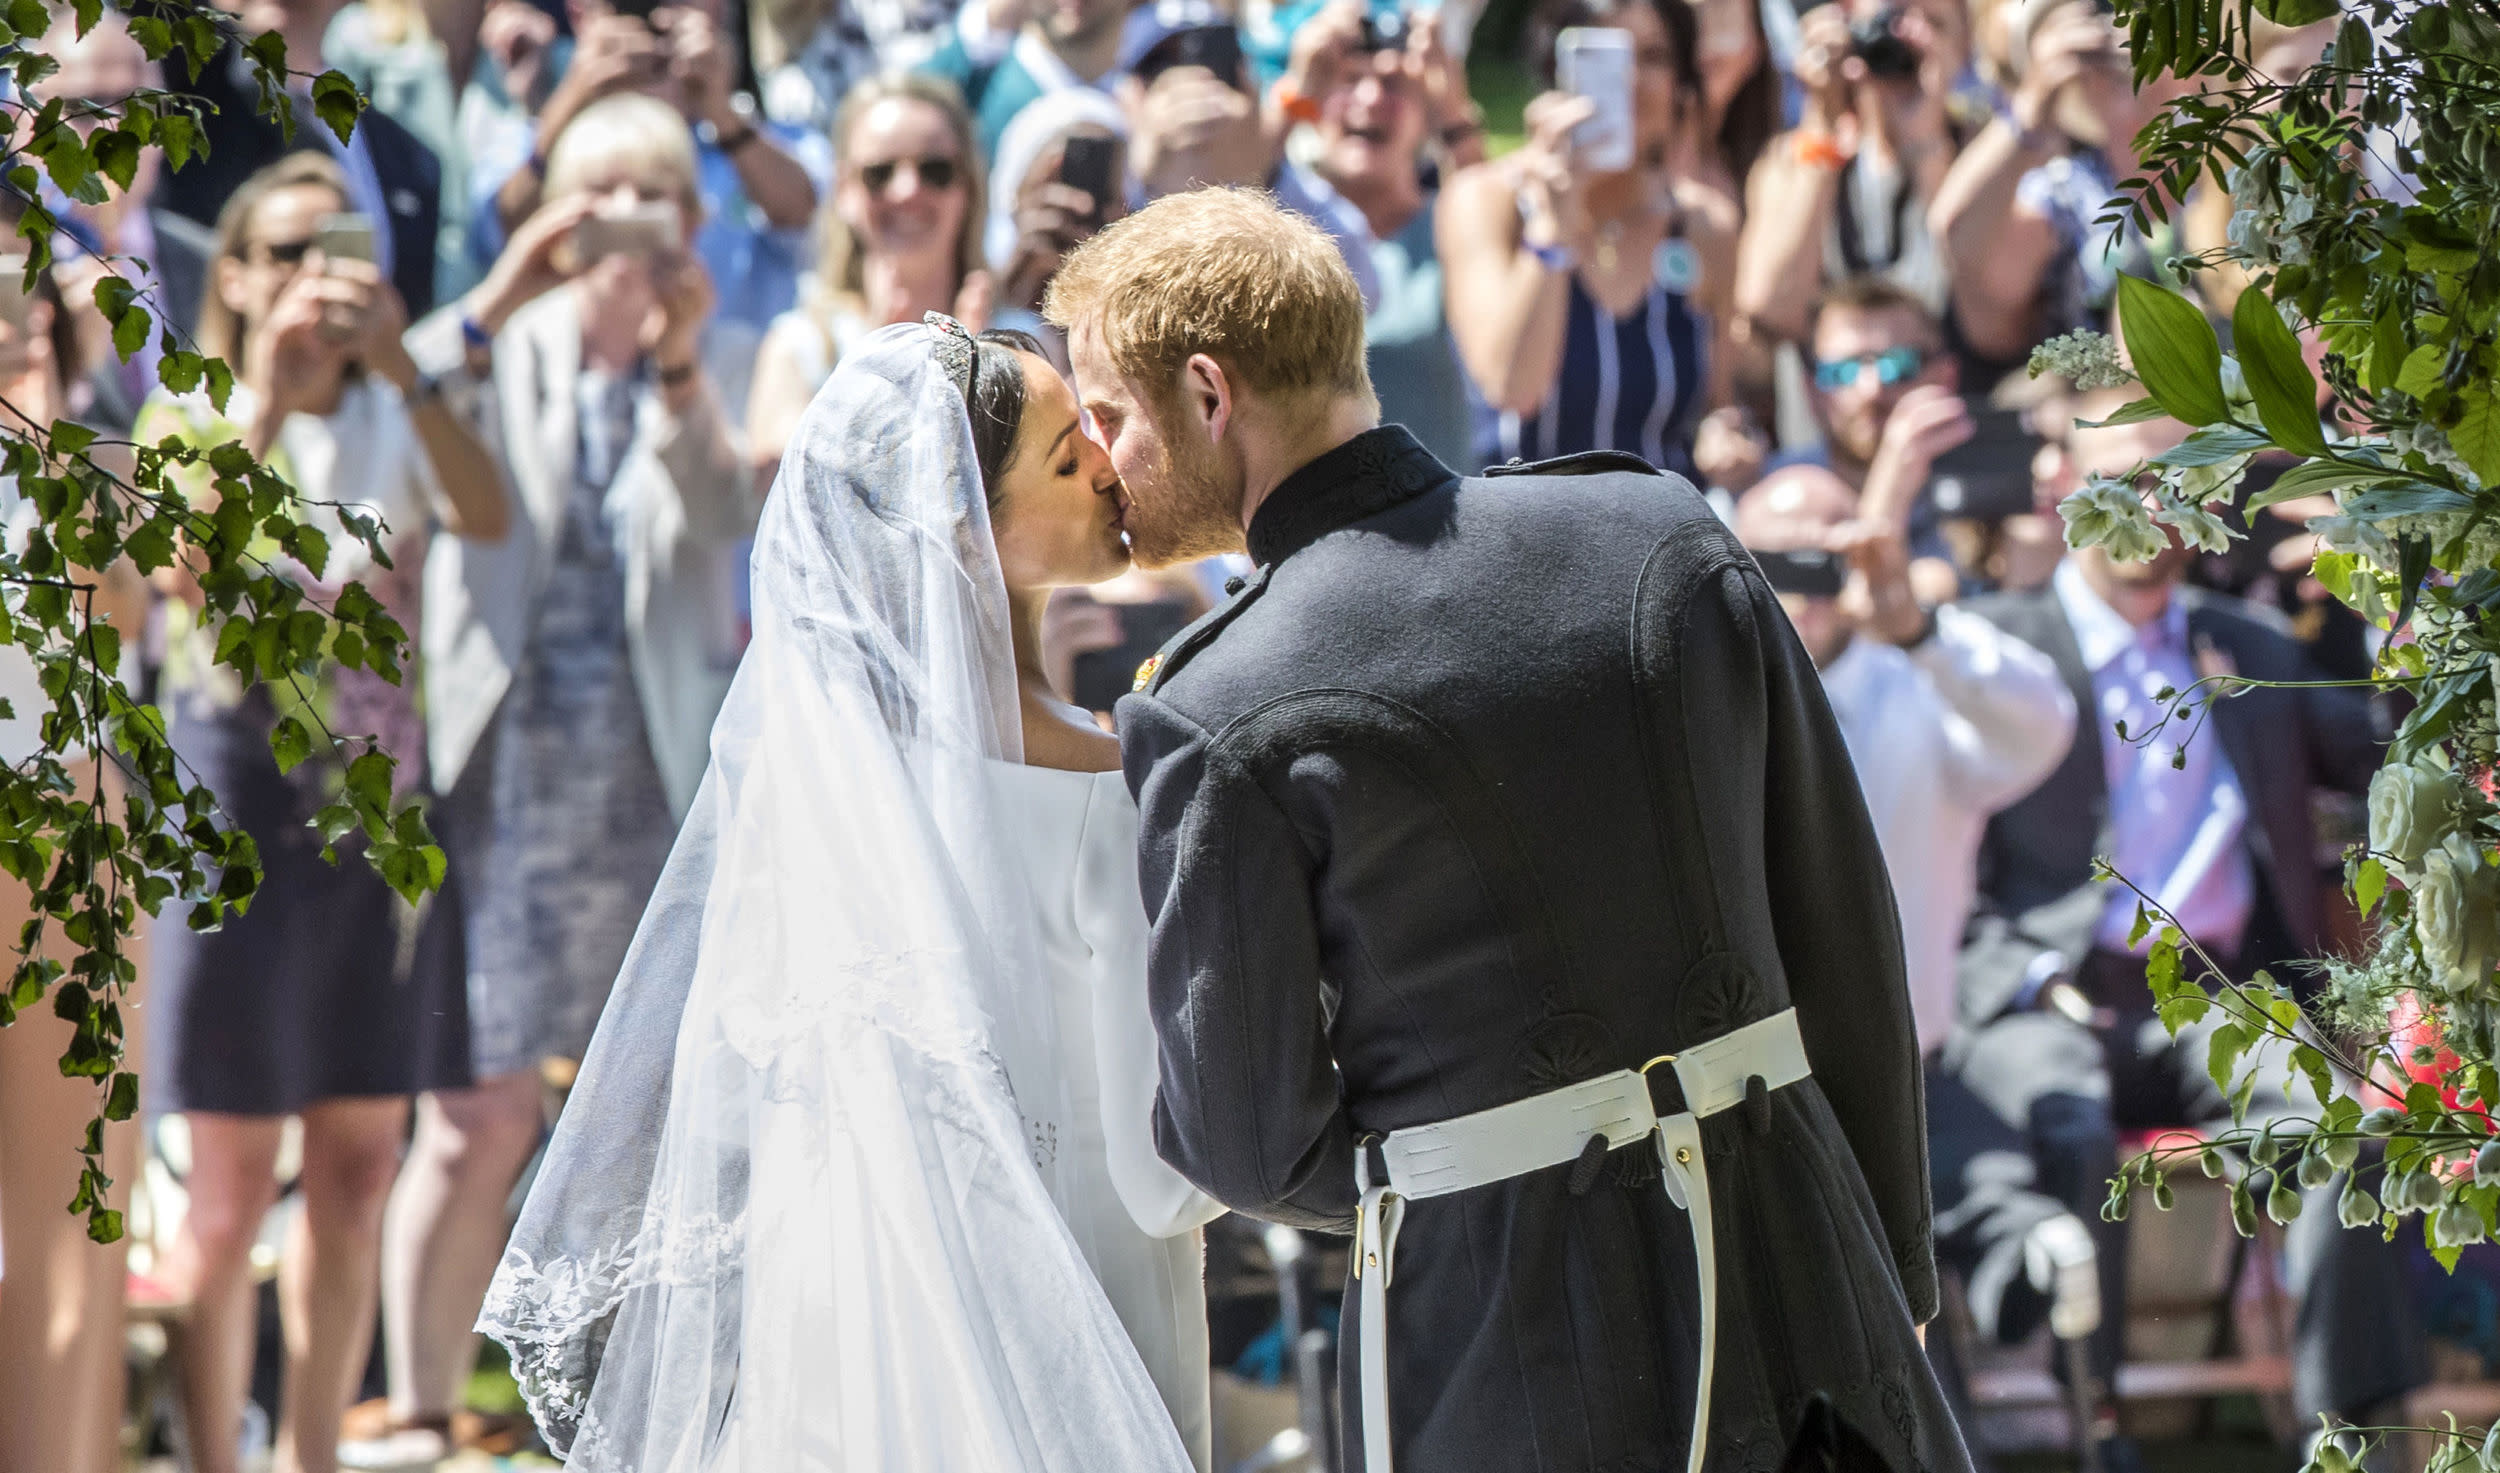 <p>Britain's Prince Harry, Duke of Sussex kisses his wife Meghan, Duchess of Sussex as they leave from the West Door of St George's Chapel, Windsor Castle, in Windsor, on May 19, 2018 after their wedding ceremony.</p>  <p>(Photo by Danny Lawson / POOL / AFP)</p>